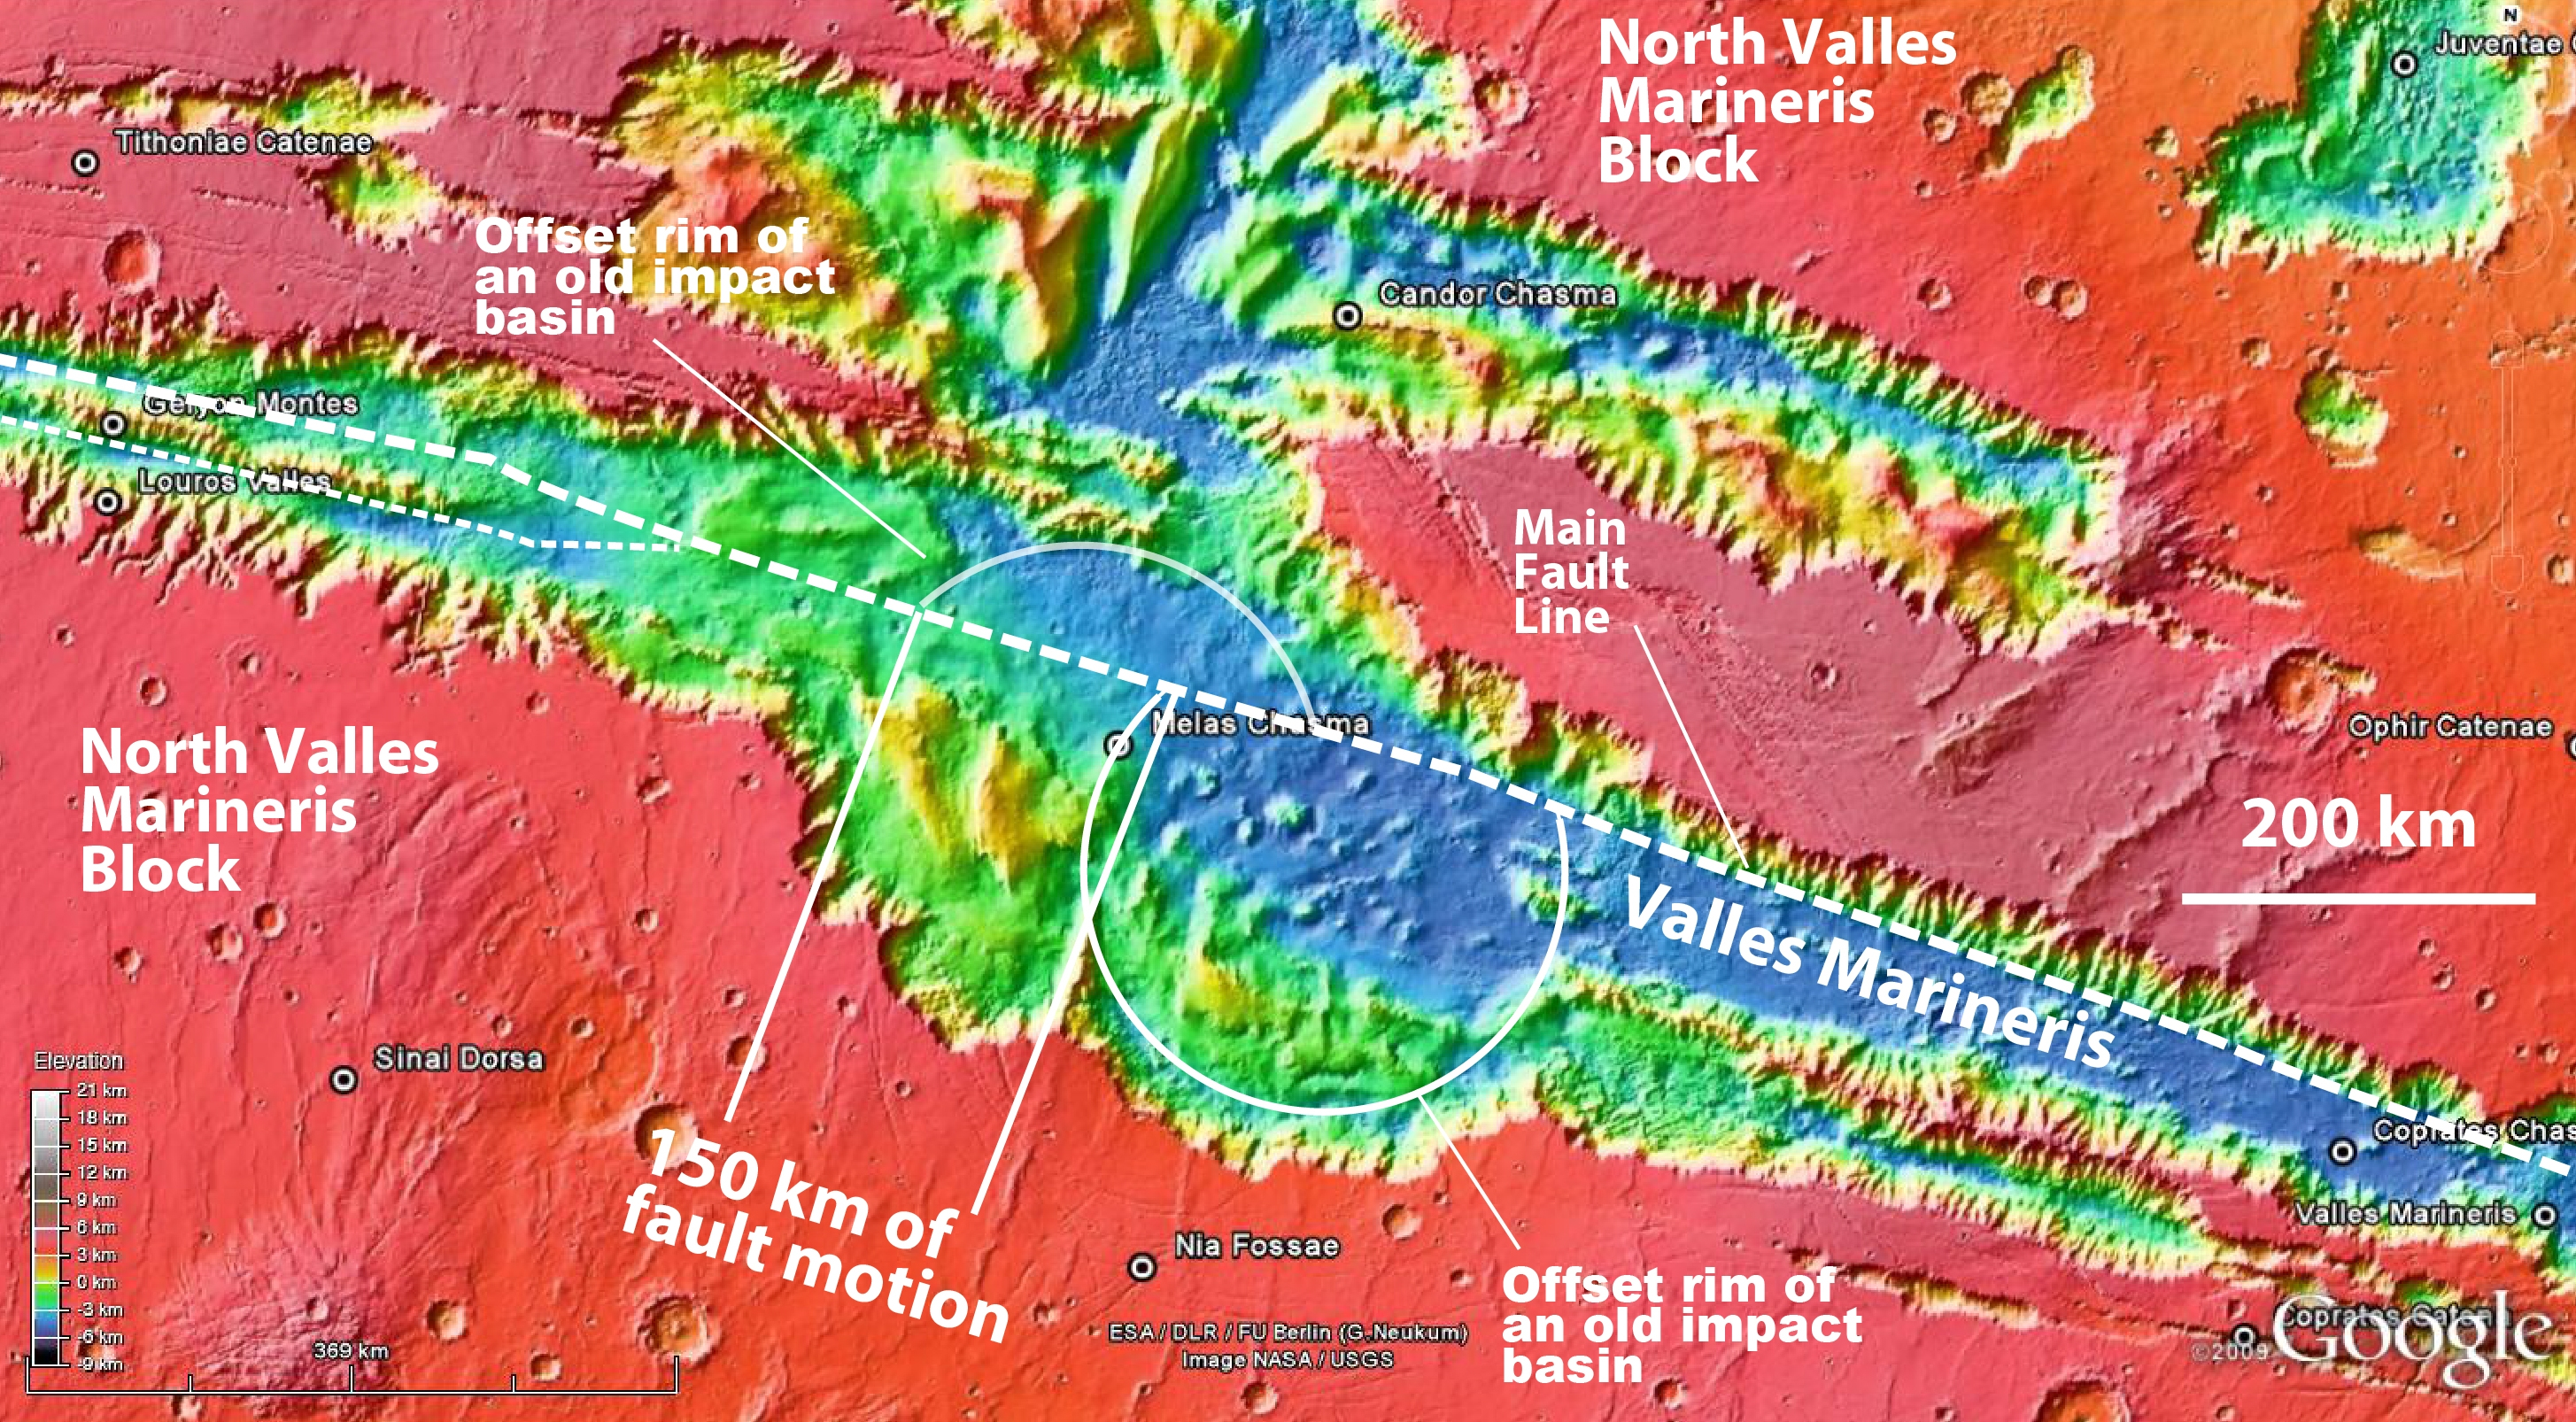 Valles Marineris holds evidence of active plate tectonics on Mars